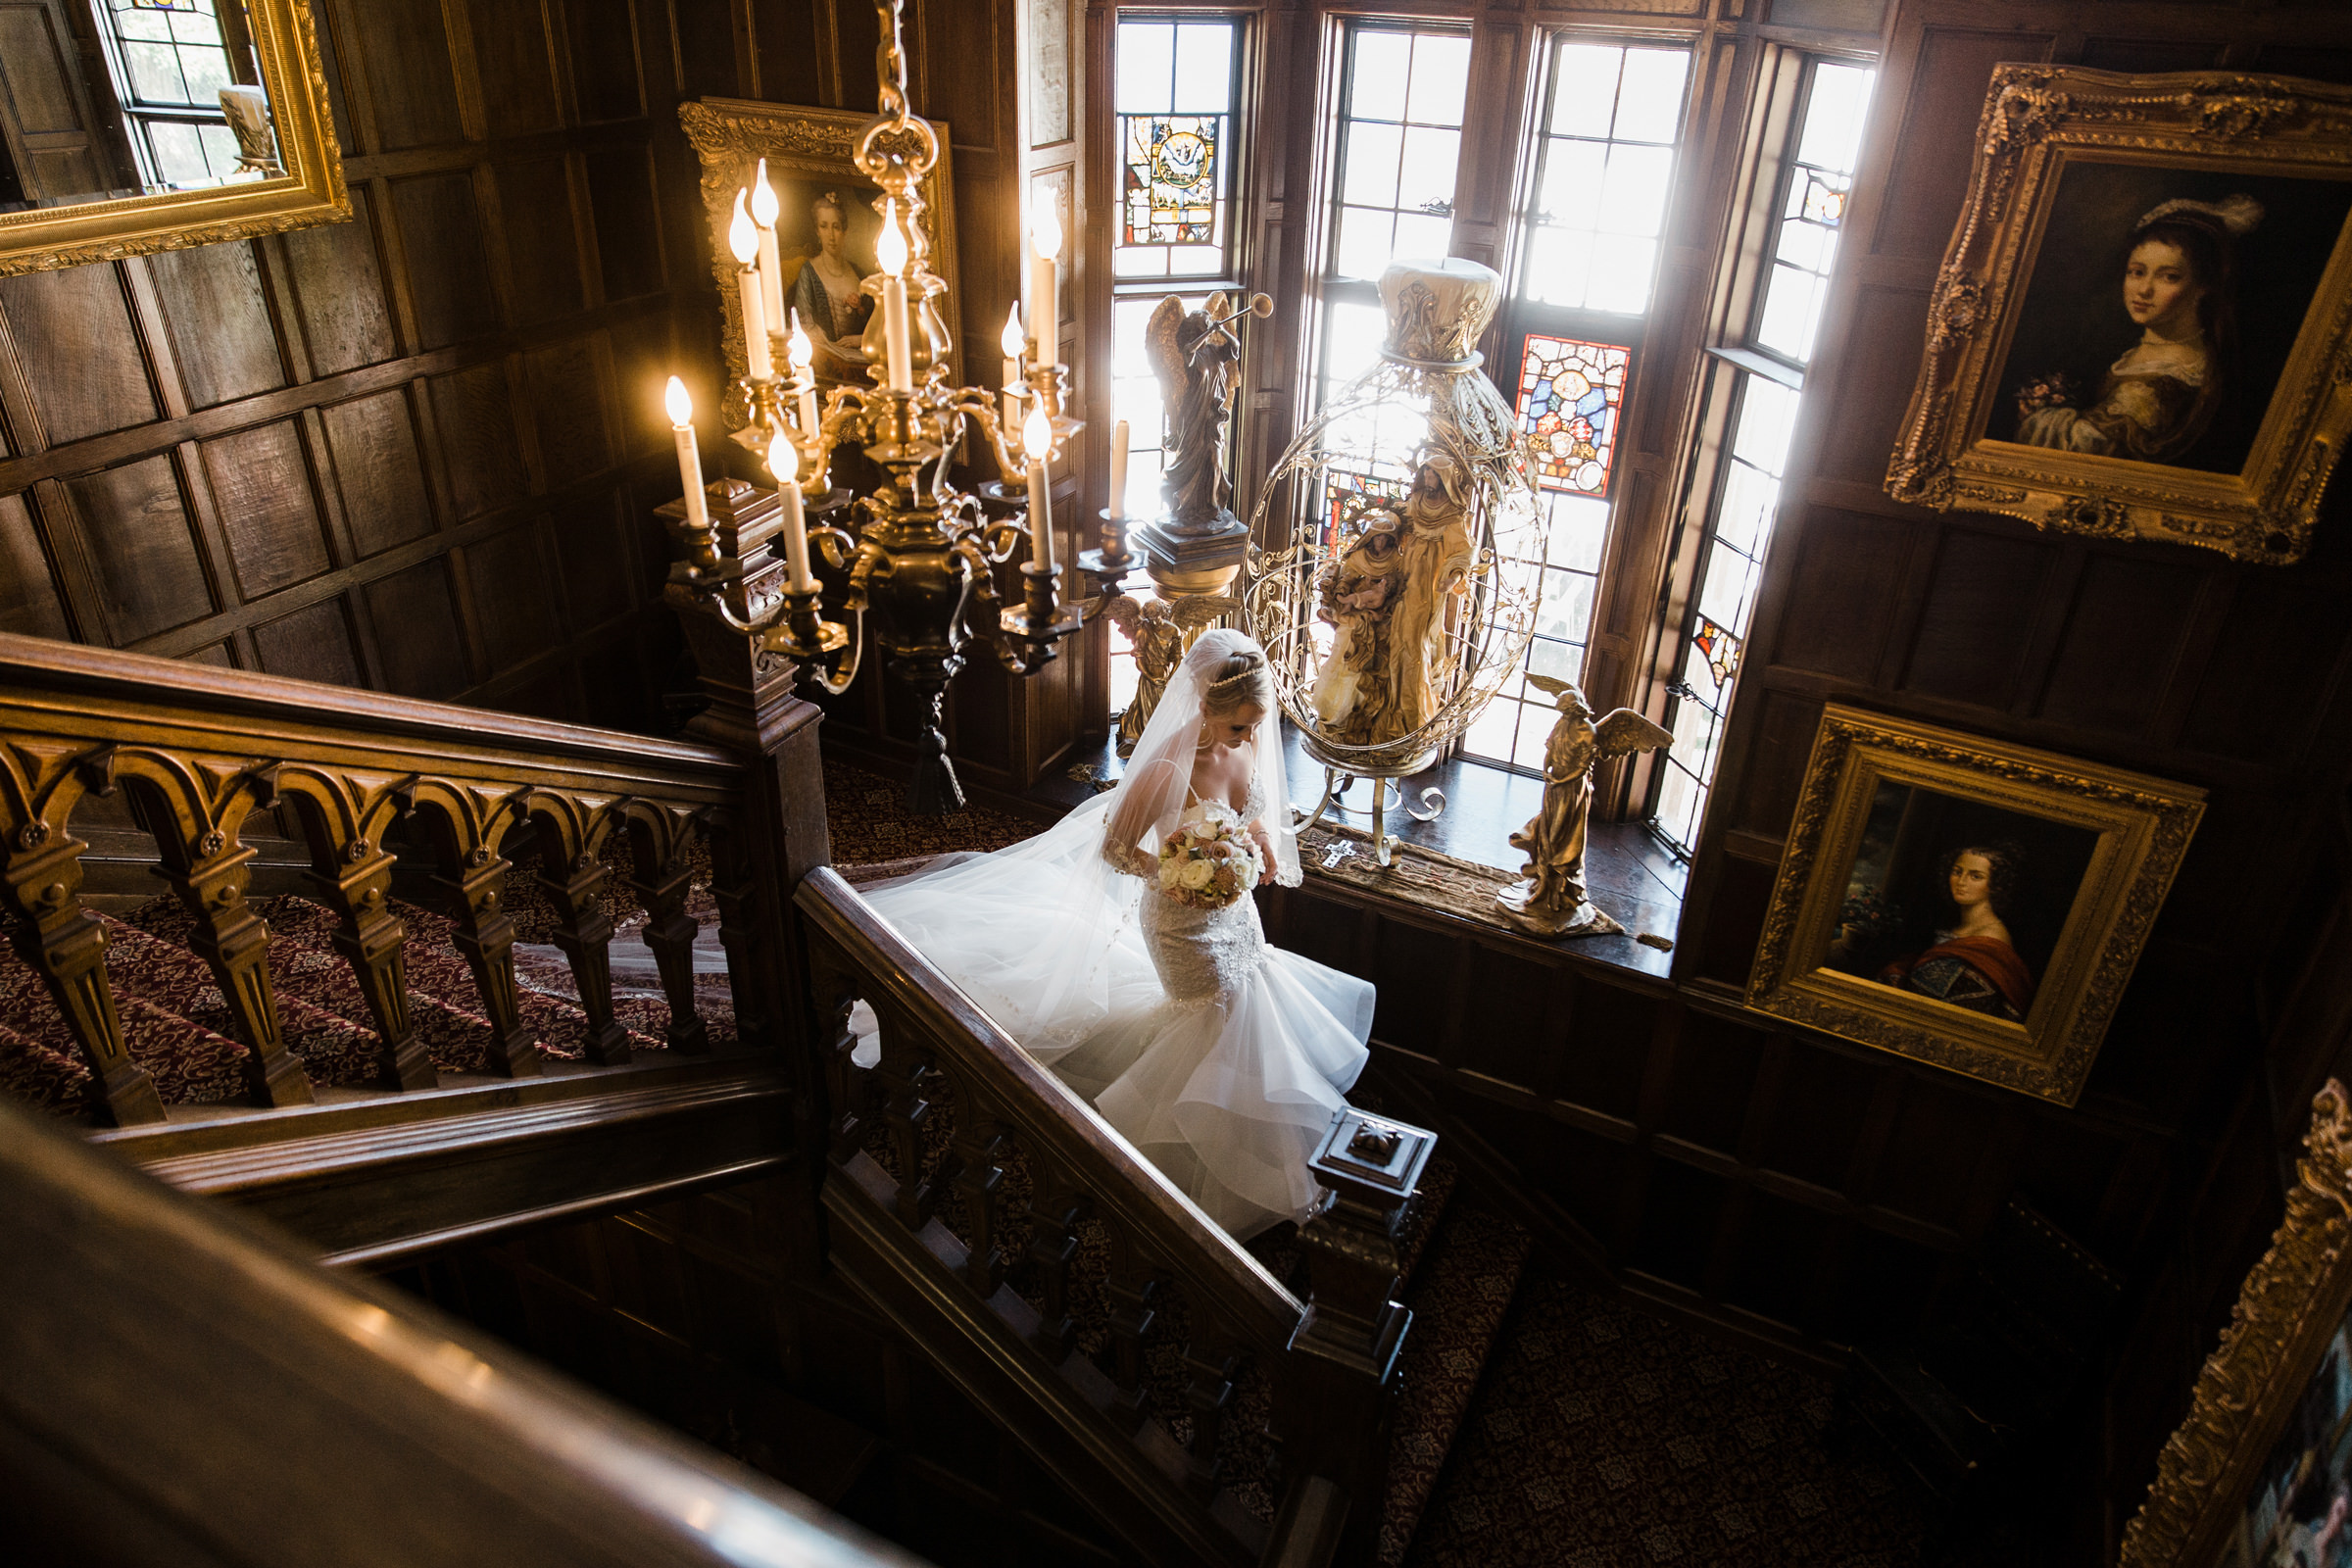 Bride in mermaid dress and long veil descends mansion stairway - photo by Stephanie Cristalli Photography